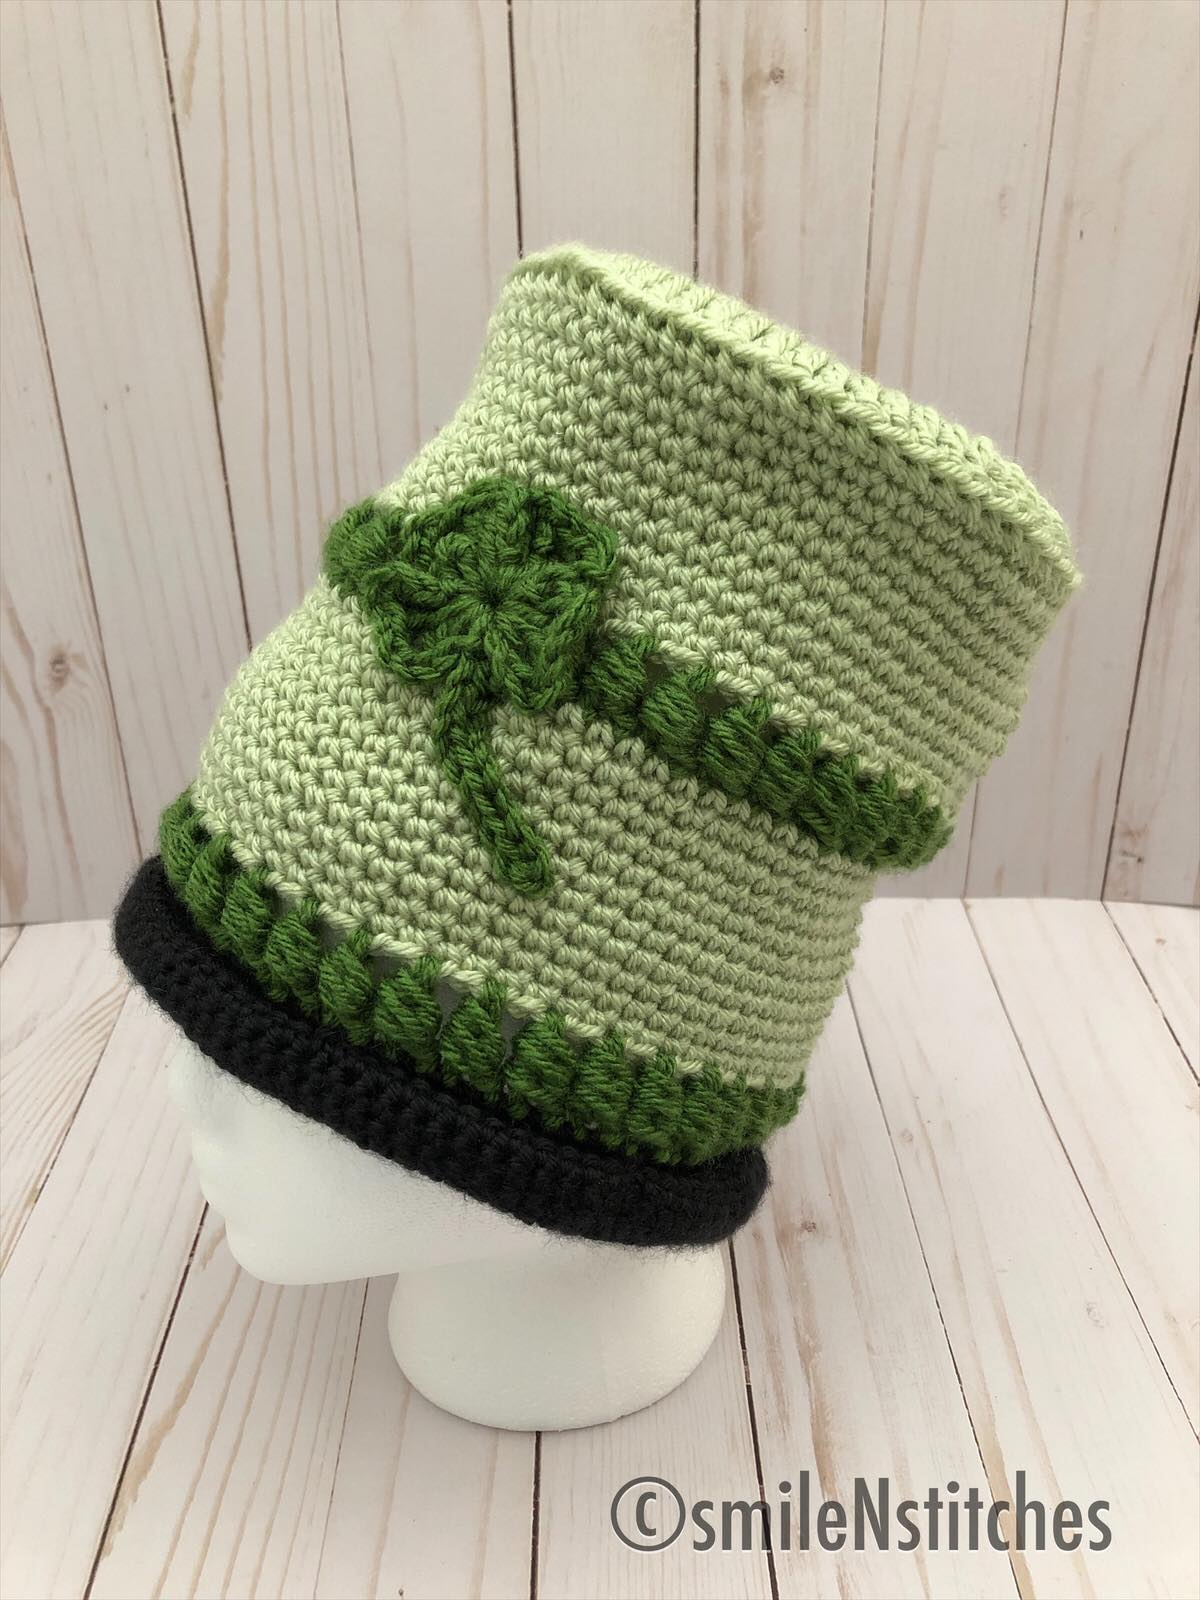 Easy Crochet Top Hat for St. Patrick's Day with Shamrock Appliqué by www.itchinforsomestitchin.com